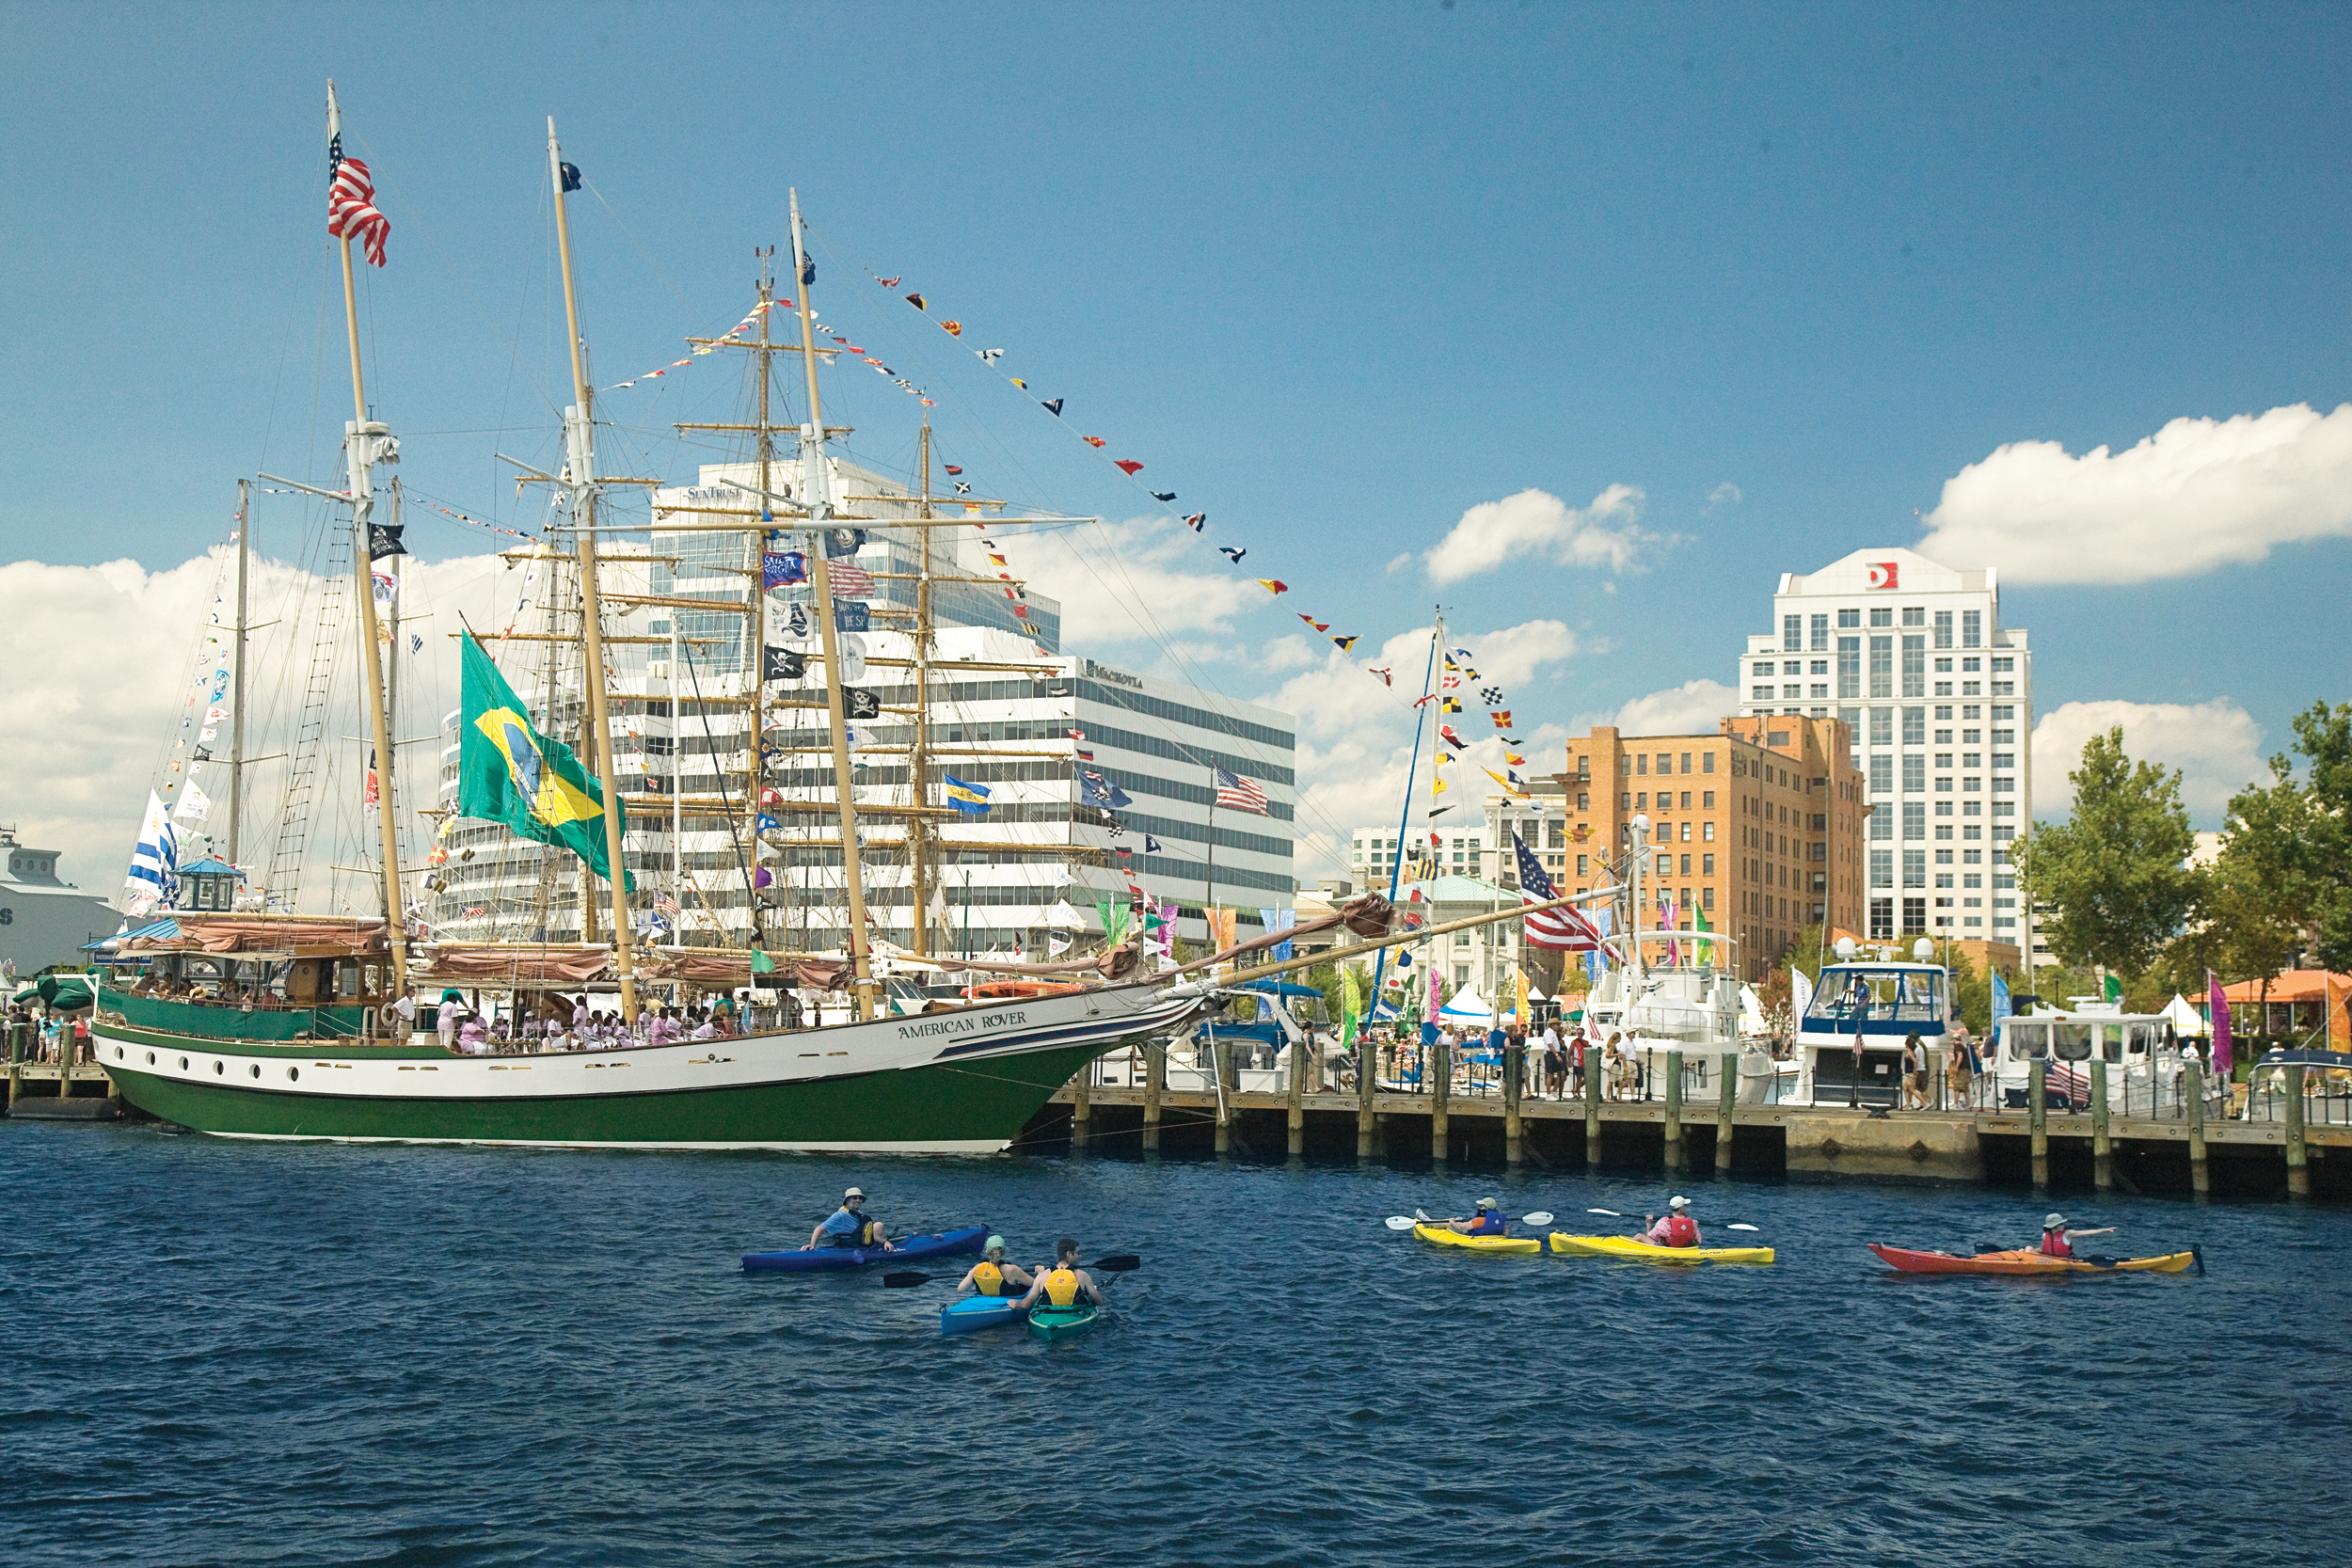 Norfolk Itinerary: Ships, Entertainment & Food at Norfolk's Harborfest